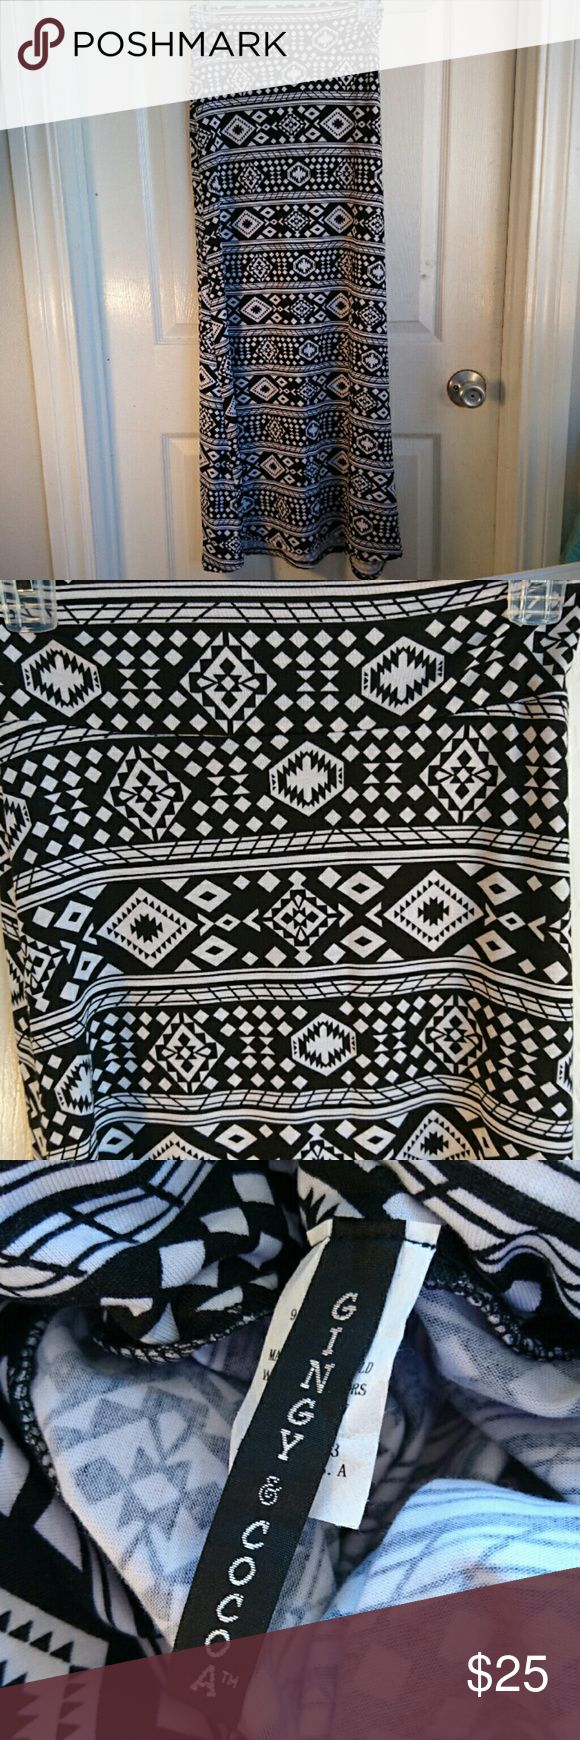 Black & White Tribal Maxi Skirt NWOT This is a Maxi Skirt with a tribal print in black and white. It is new without tags and has no rips, loose material or stains. It is in excellent condition. It is a Polyester and Spandex blend material. Gingy & Cocoa Skirts Maxi